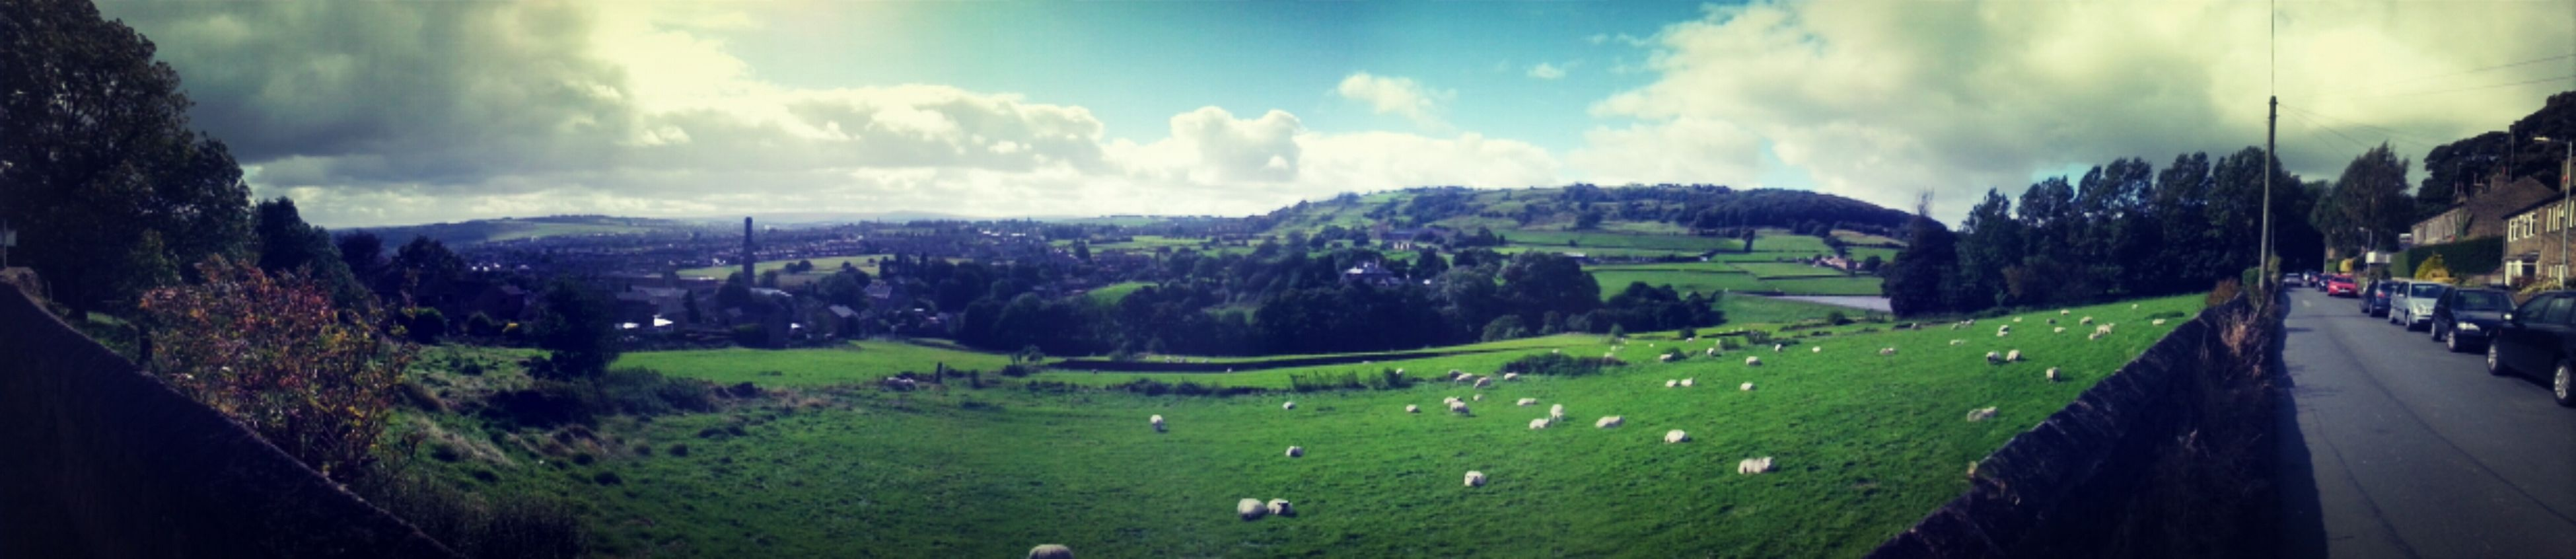 Hanging Out Green Sheep Panorama Countryside Hills